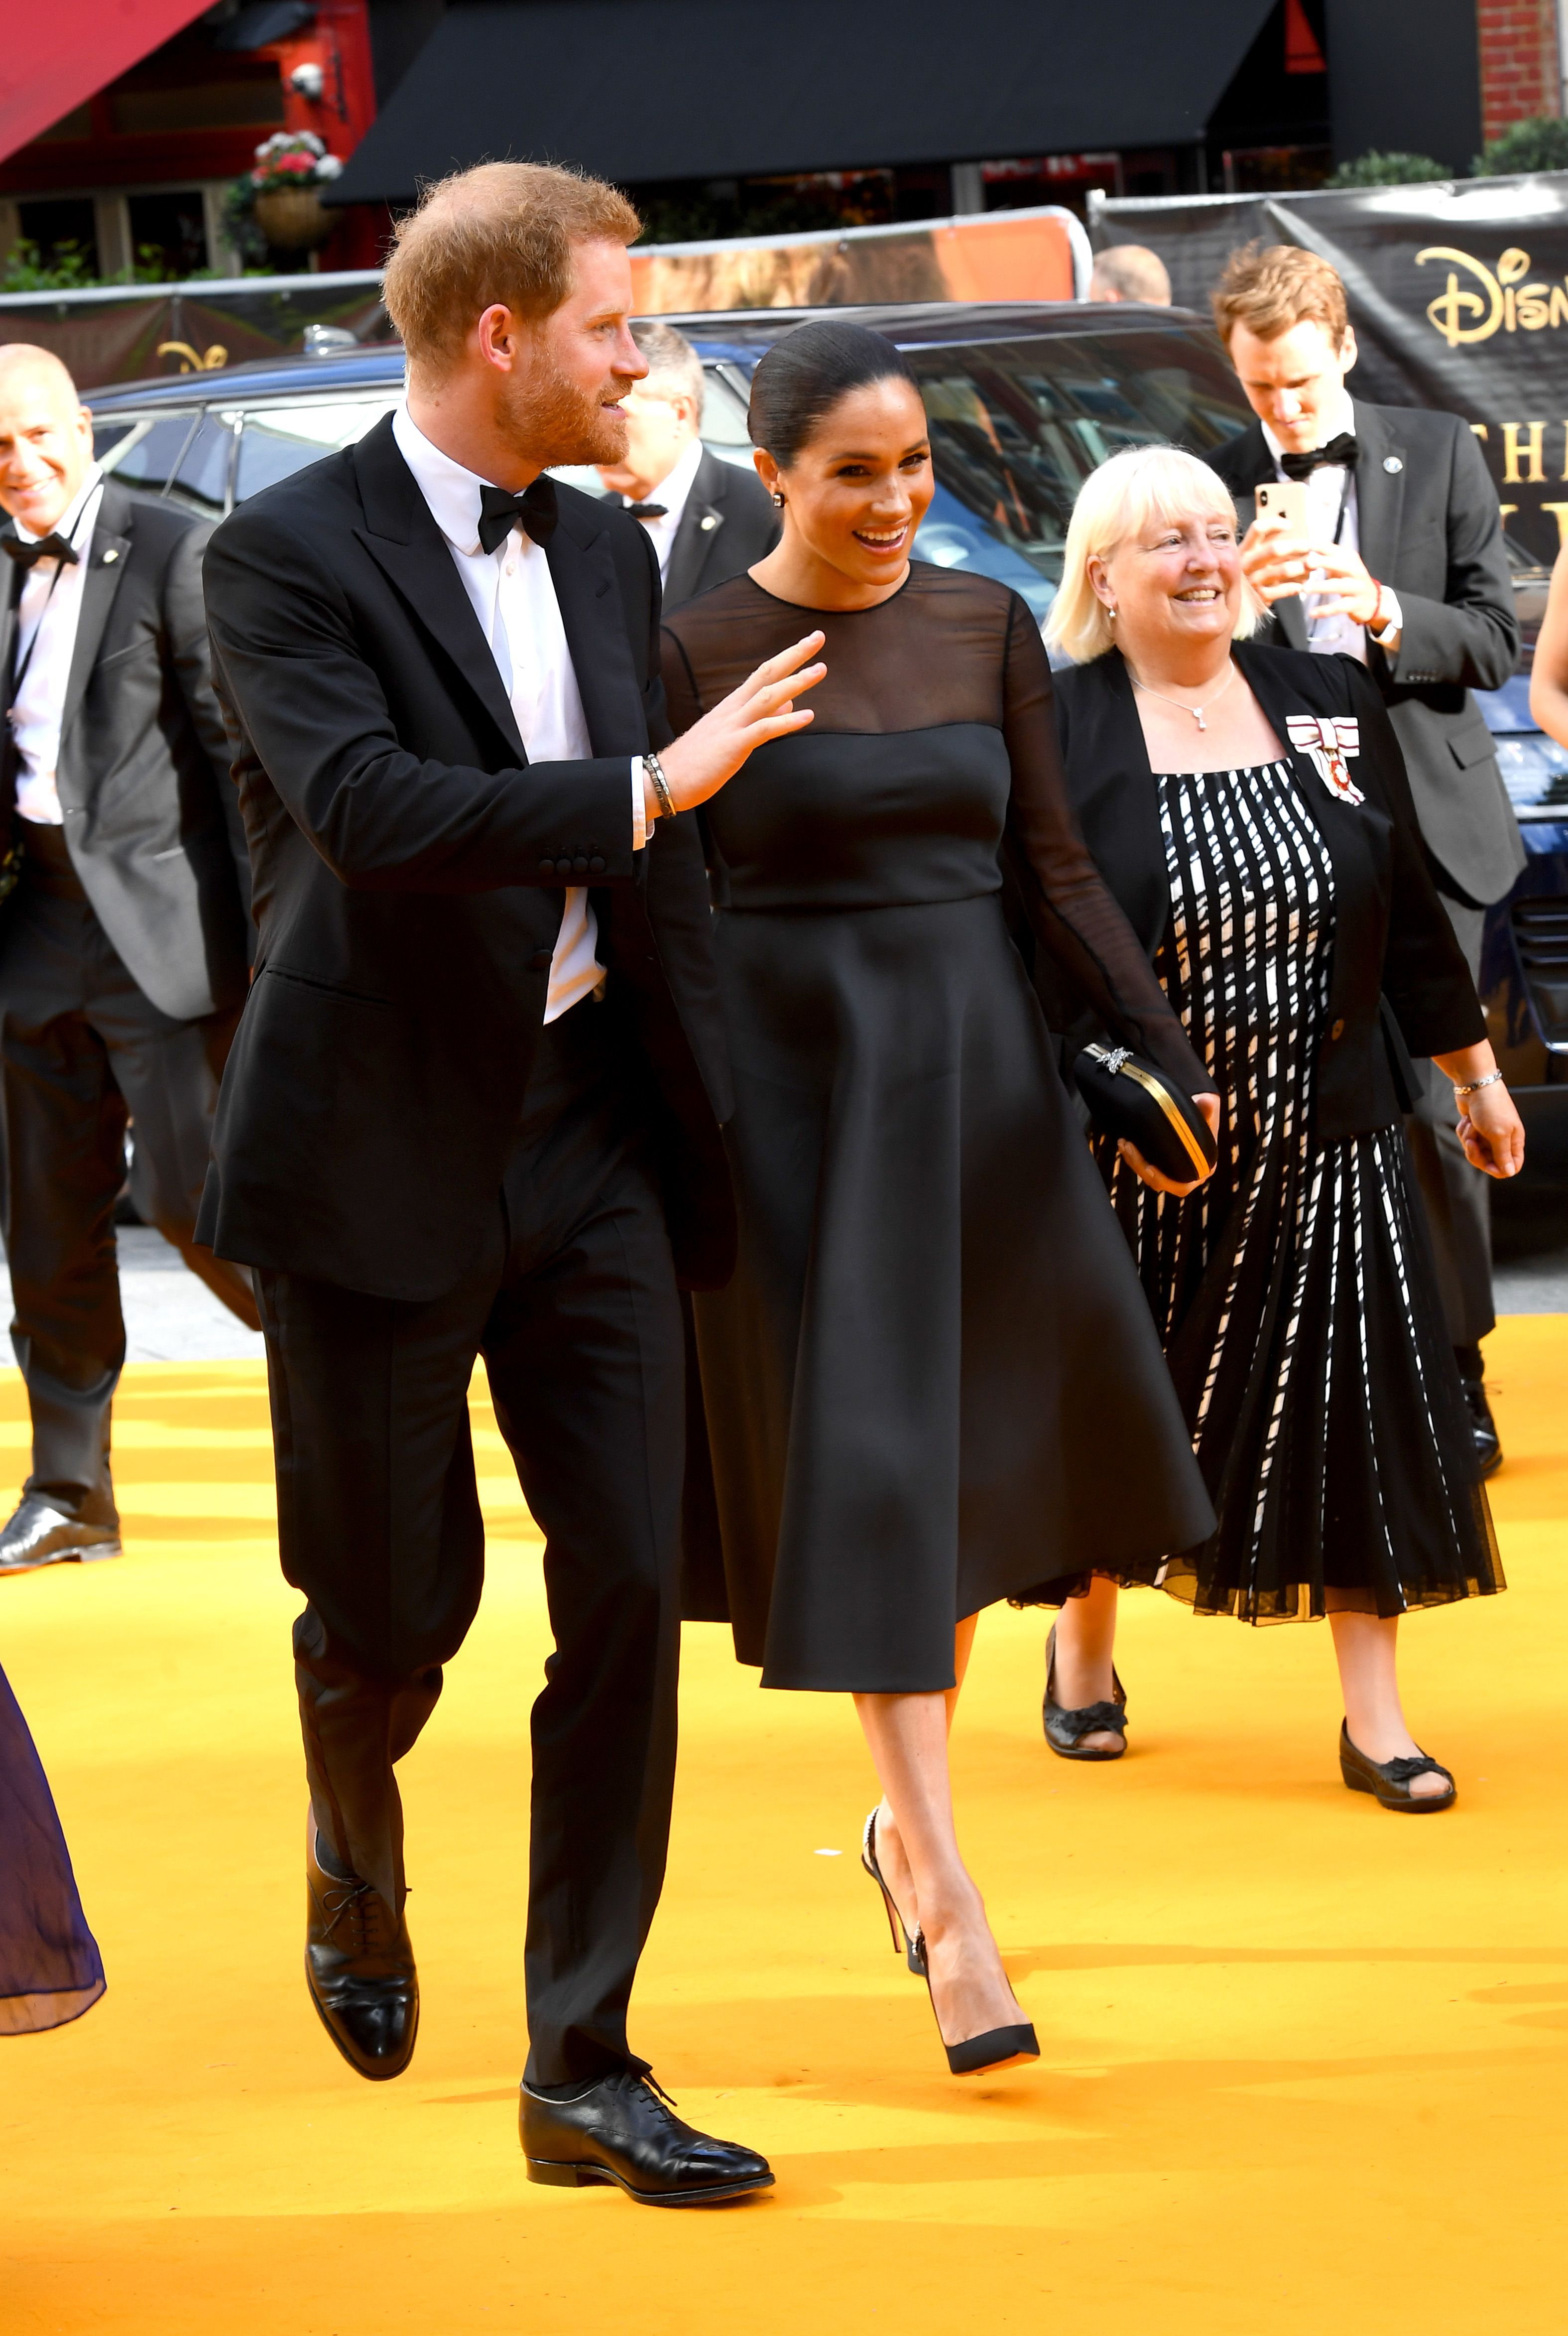 The Duke and Duchess of Sussex attend The Lion King Premiere in Leicester Square